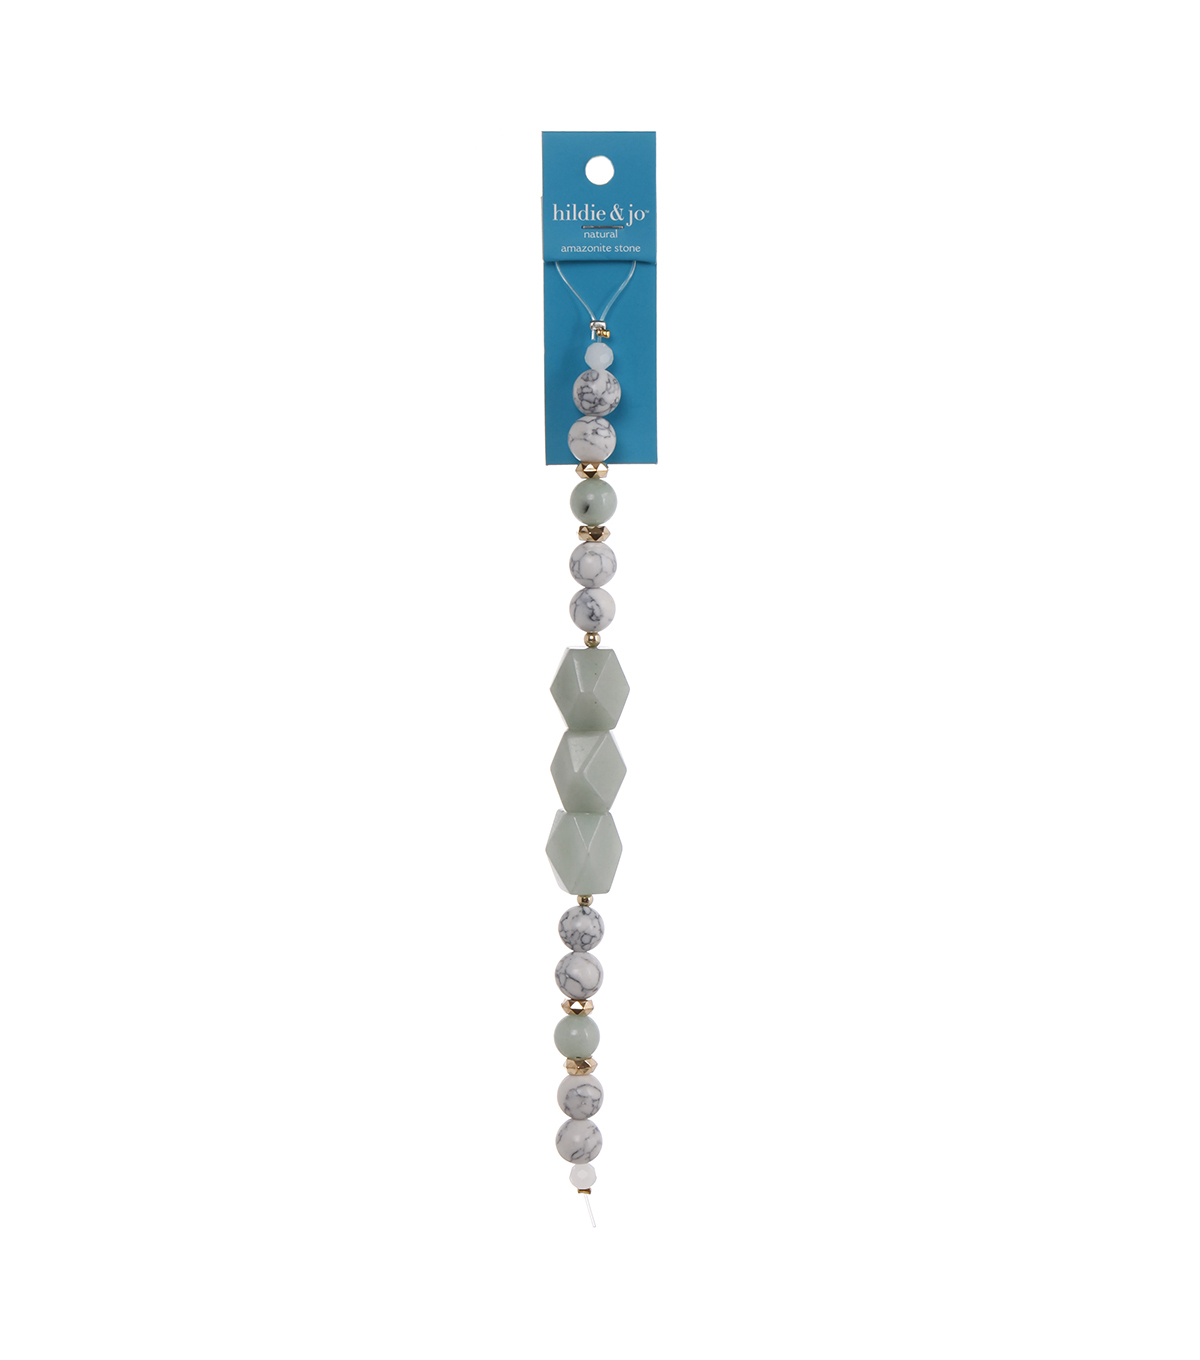 hildie & jo™ 7\u0027\u0027 Strung Beads-Mint White & Blue